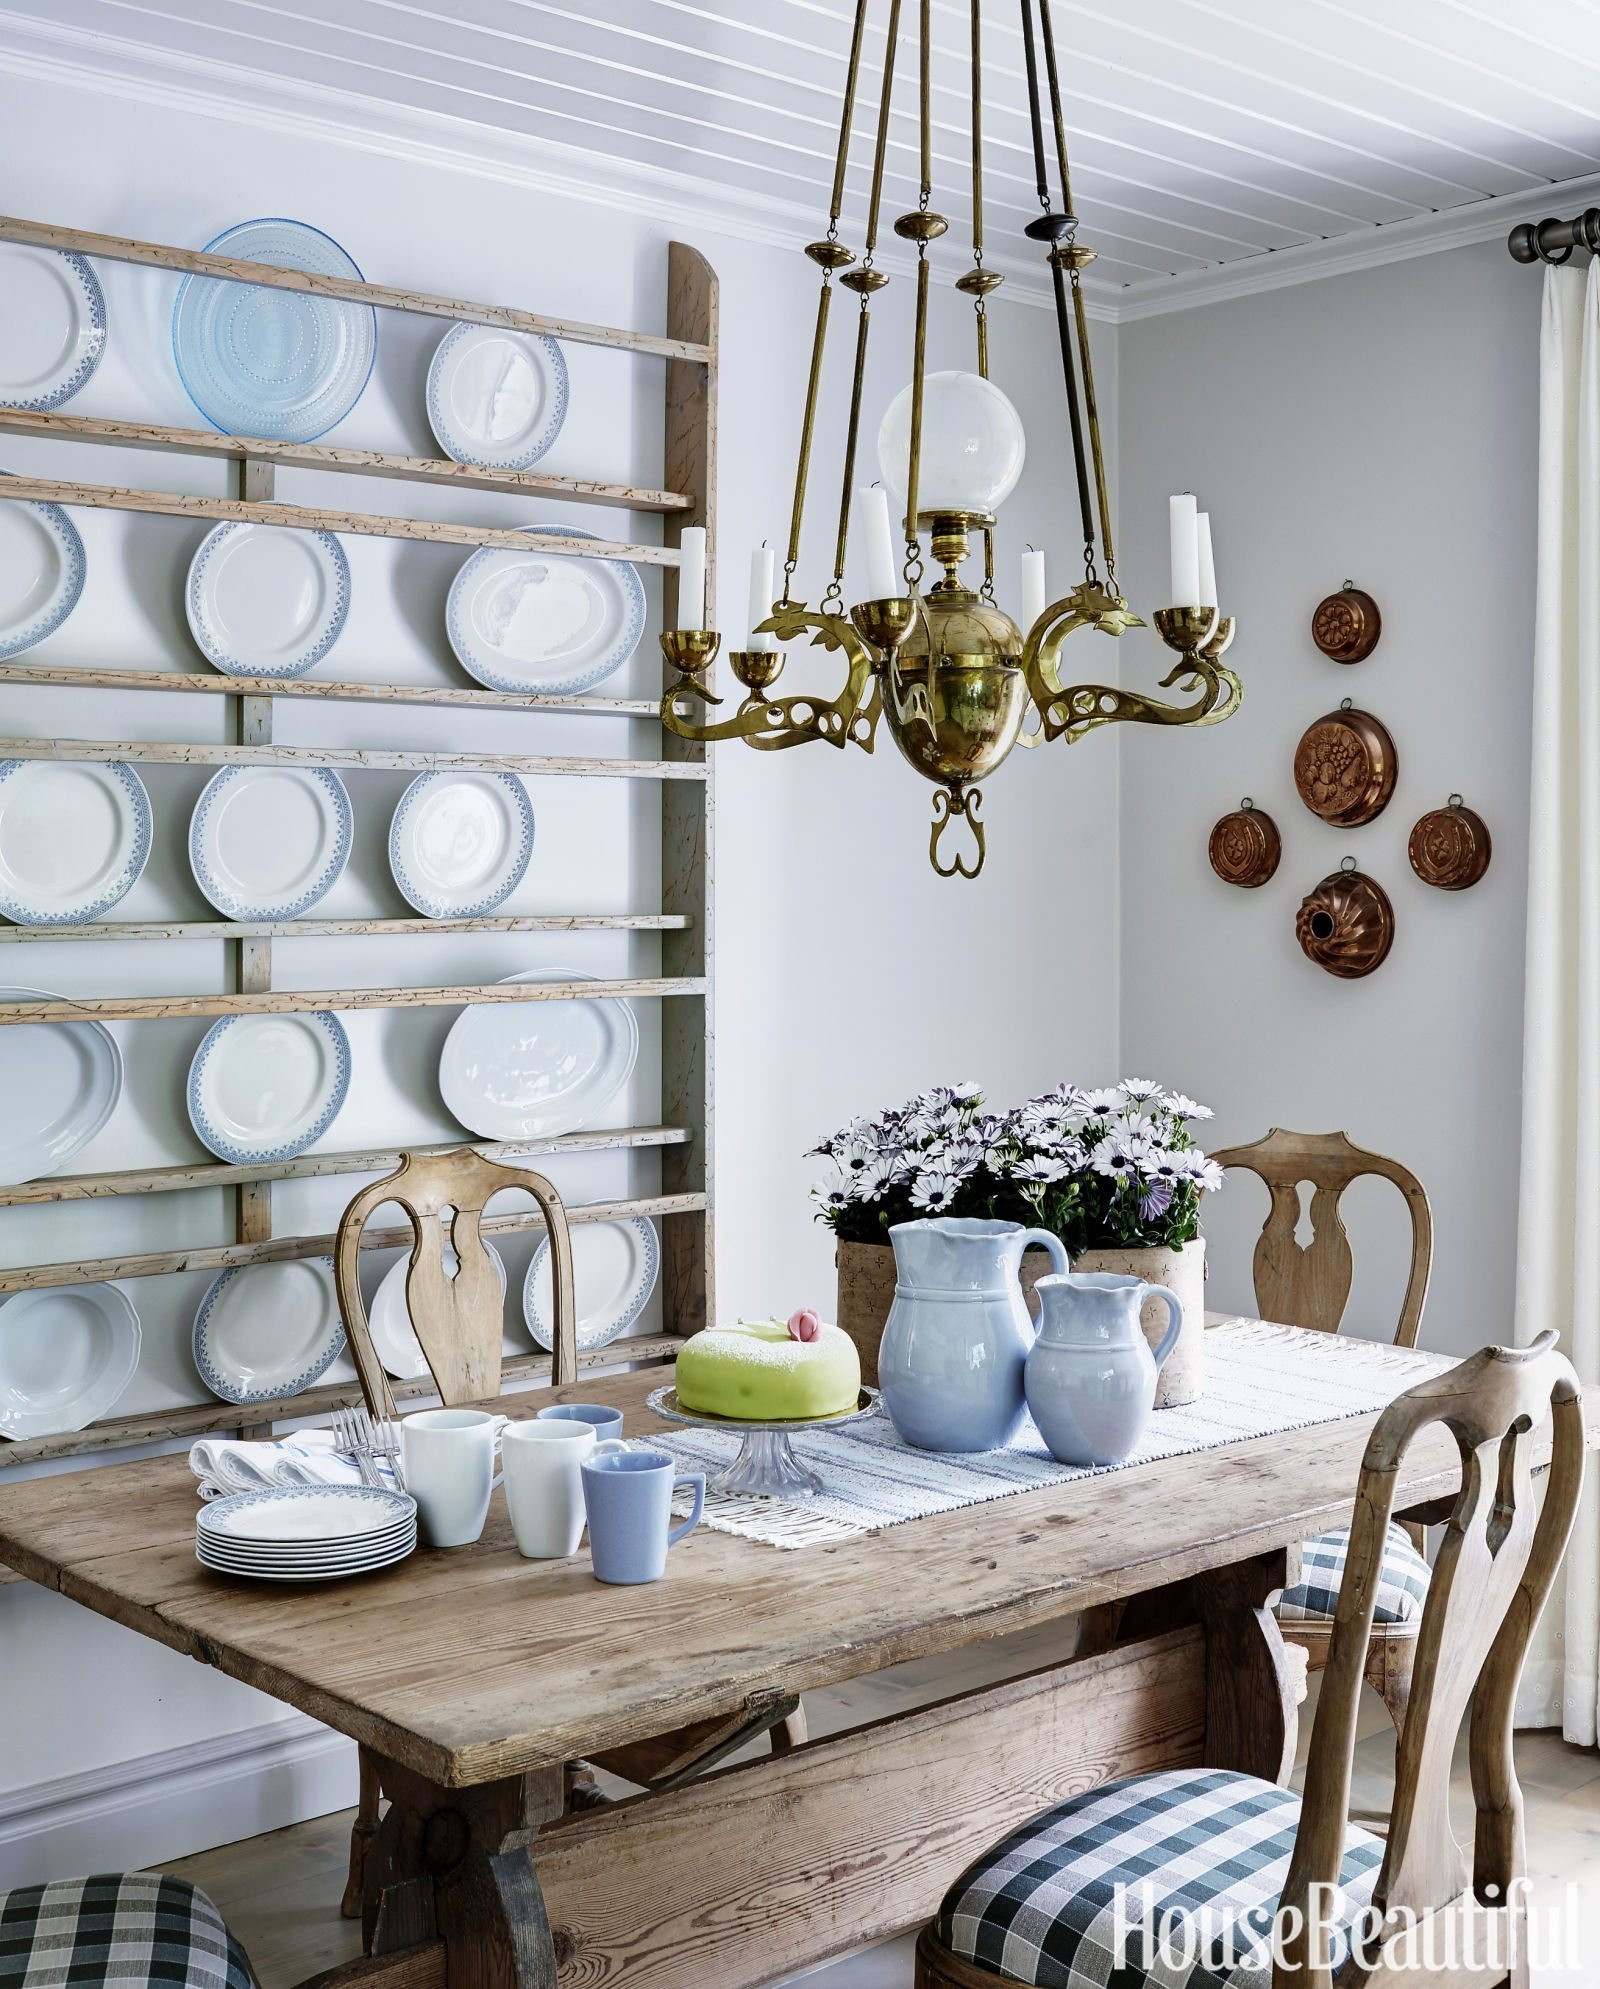 awesome swedish decorating style gallery - design and decorating